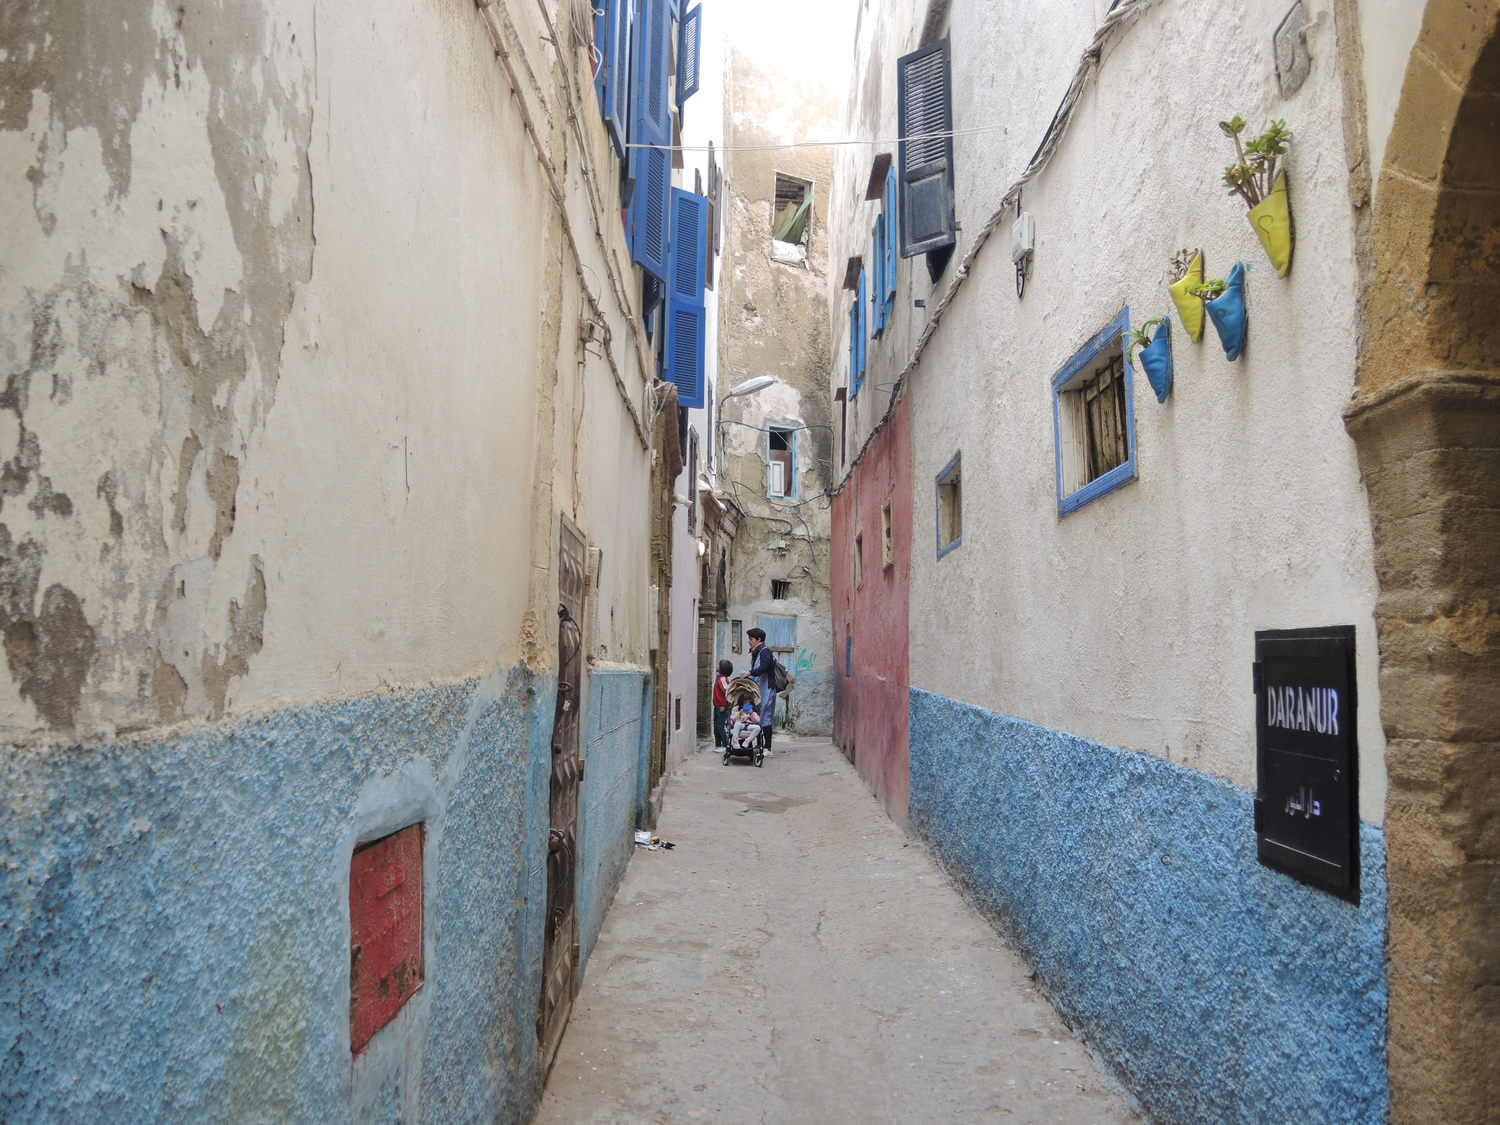 Street of the medina in Essaouira